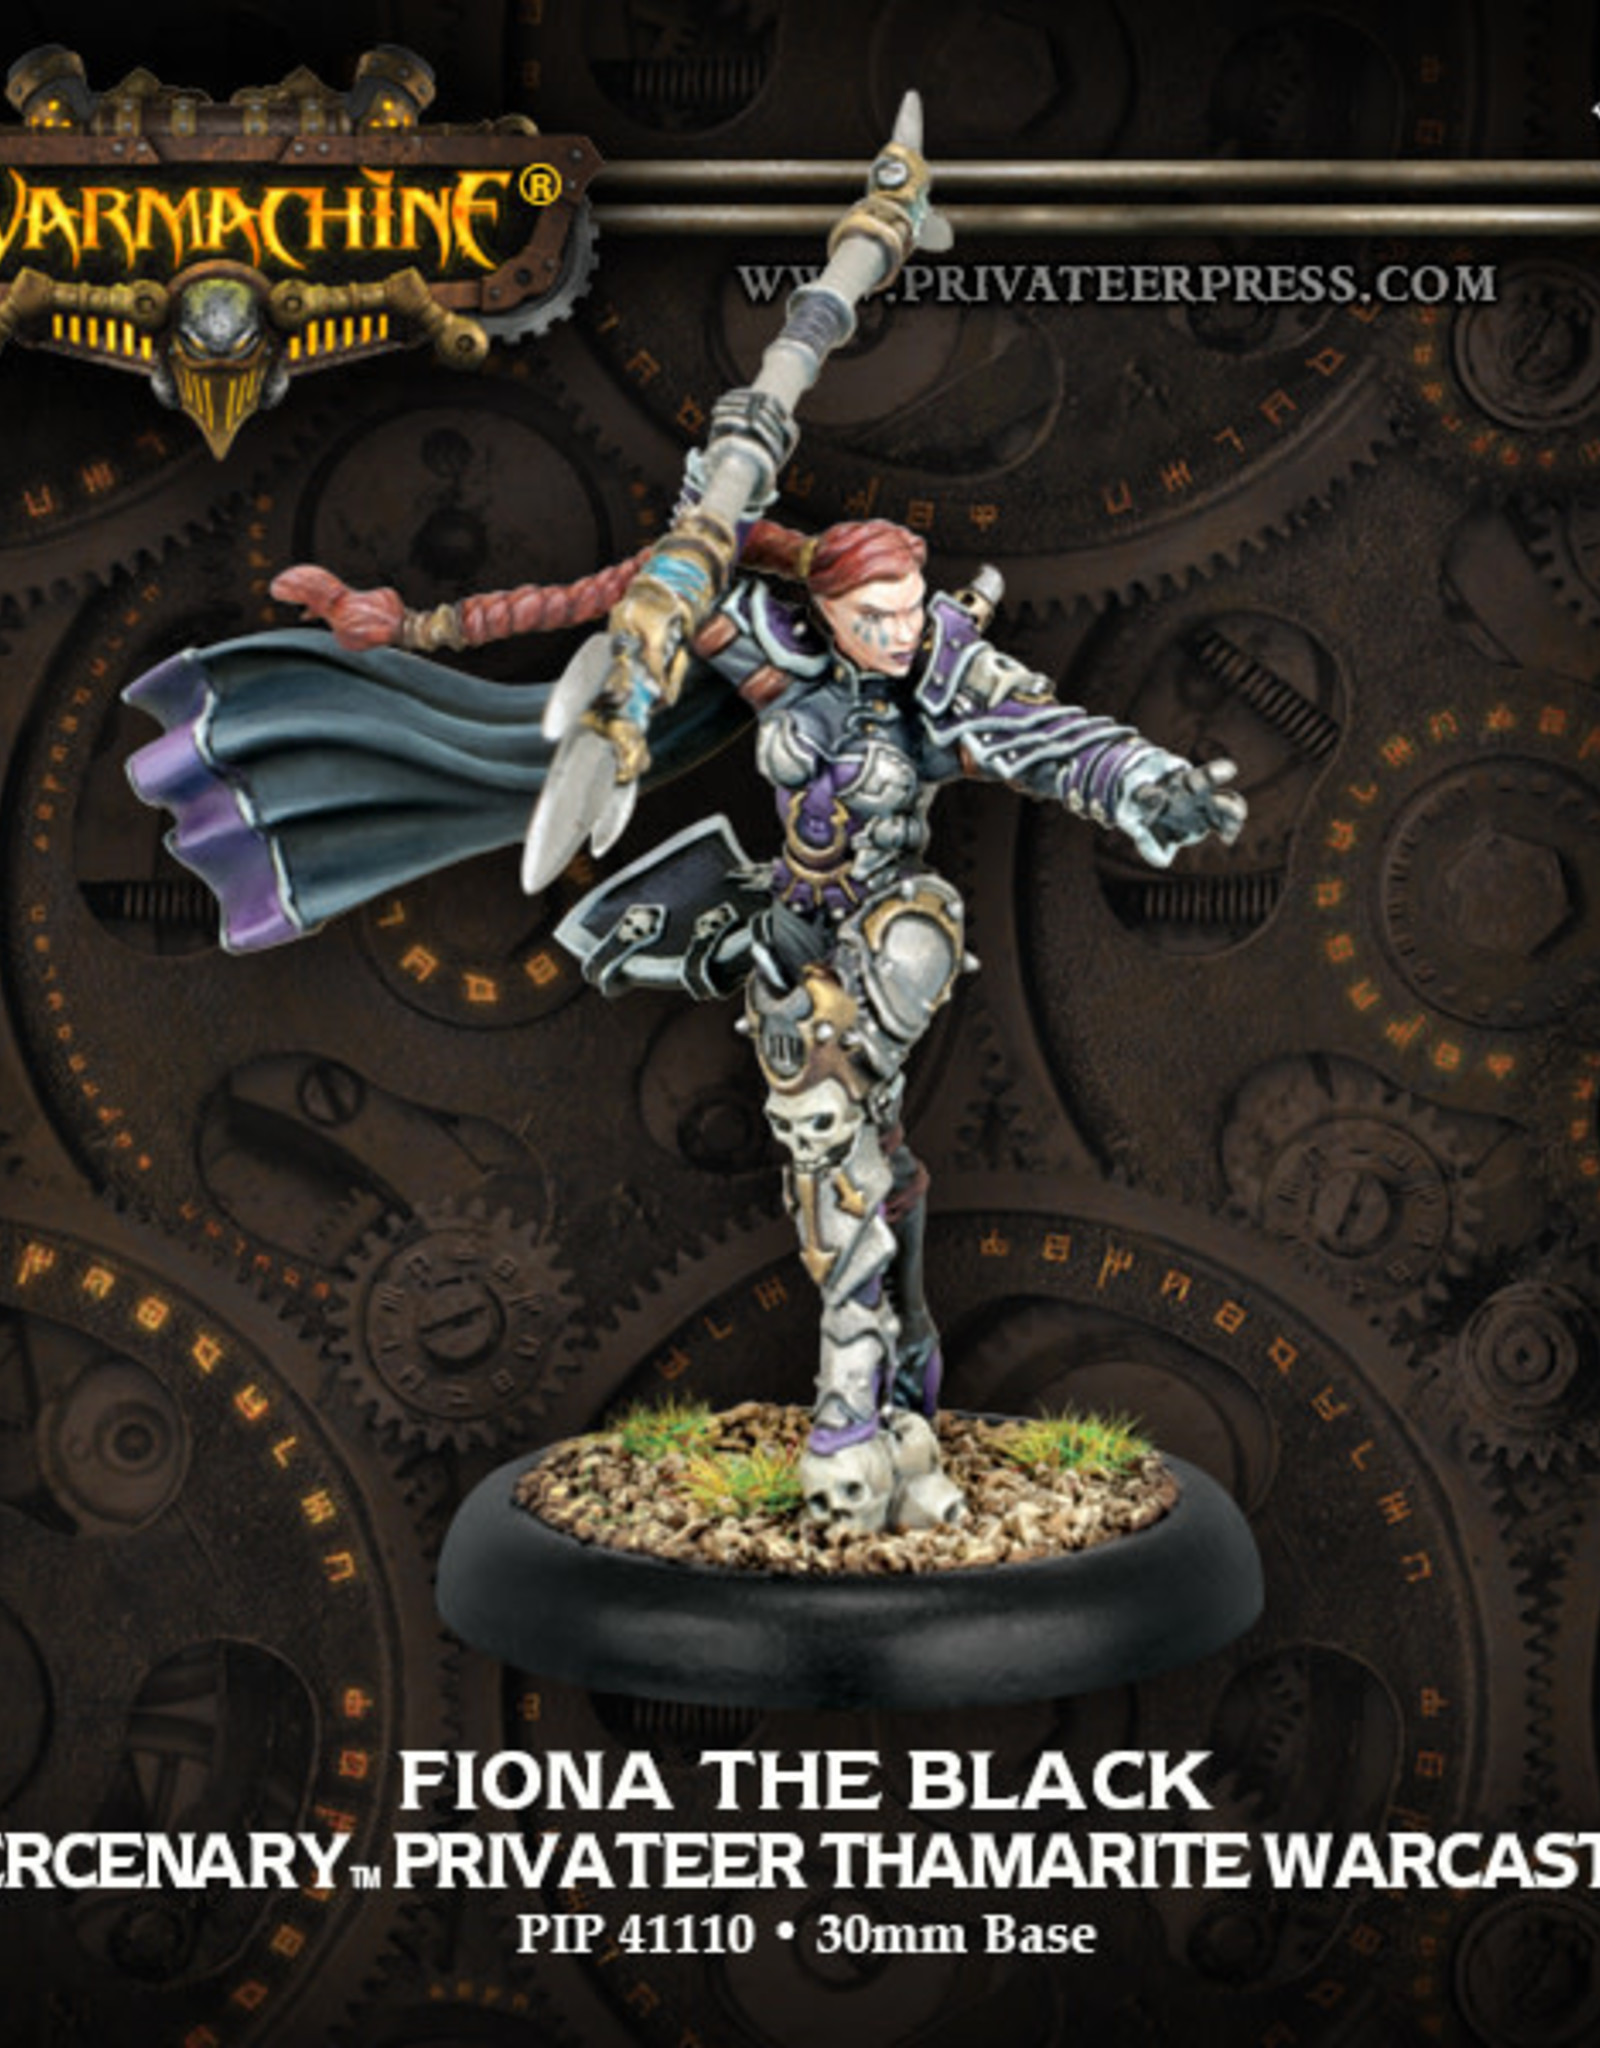 Warmachine Mercenaries - Fiona the Black